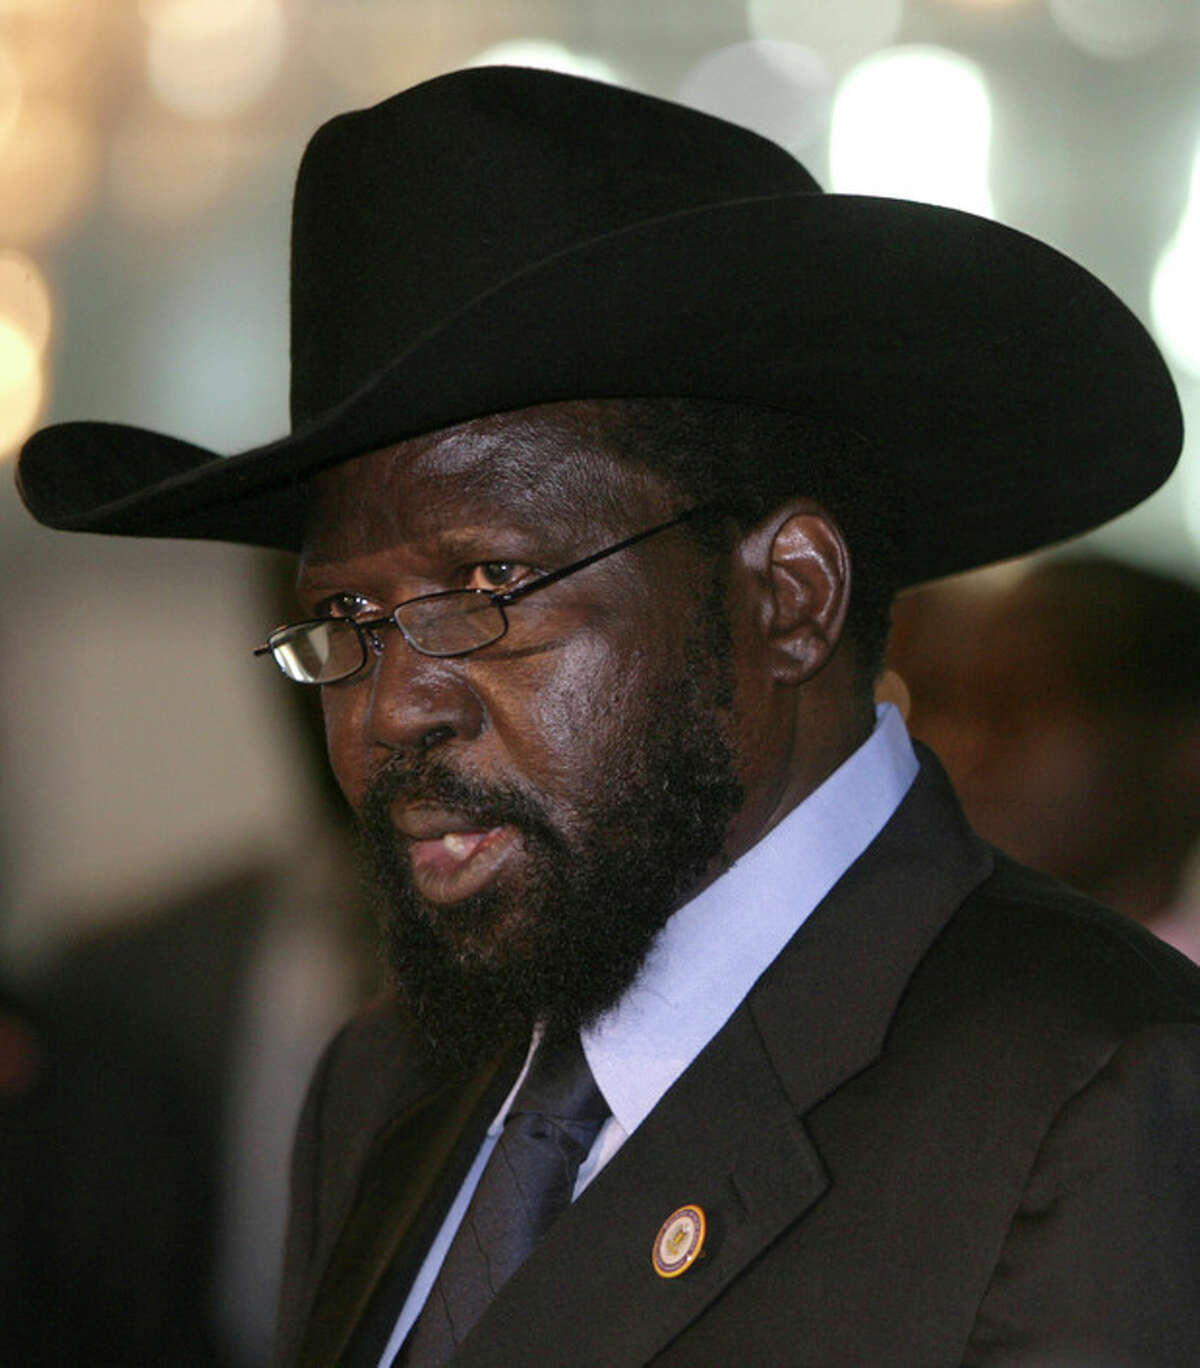 FILE - In this Oct. 9 2011 file, South Sudan's President Salva Kiir, speaks at a joint news conference at the airport in Khartoum, Sudan. Sporadic gunfire rang out early Monday, Dec. 16, 2013, in the South Sudan capital, Juba, in what a senior military official said were clashes between factions of the country's military. There has been political tension in the world's youngest nation since South Sudan President Kiir sacked Riek Machar as his deputy in July. The local Sudan Tribune newspaper reported on its website that clashes erupted late Sunday between members of the presidential guard in fighting that seemed to pit soldiers from Kiira's Dinka tribe against those from the Nuer tribe of Machar. (AP Photo/Abd Raouf, File)